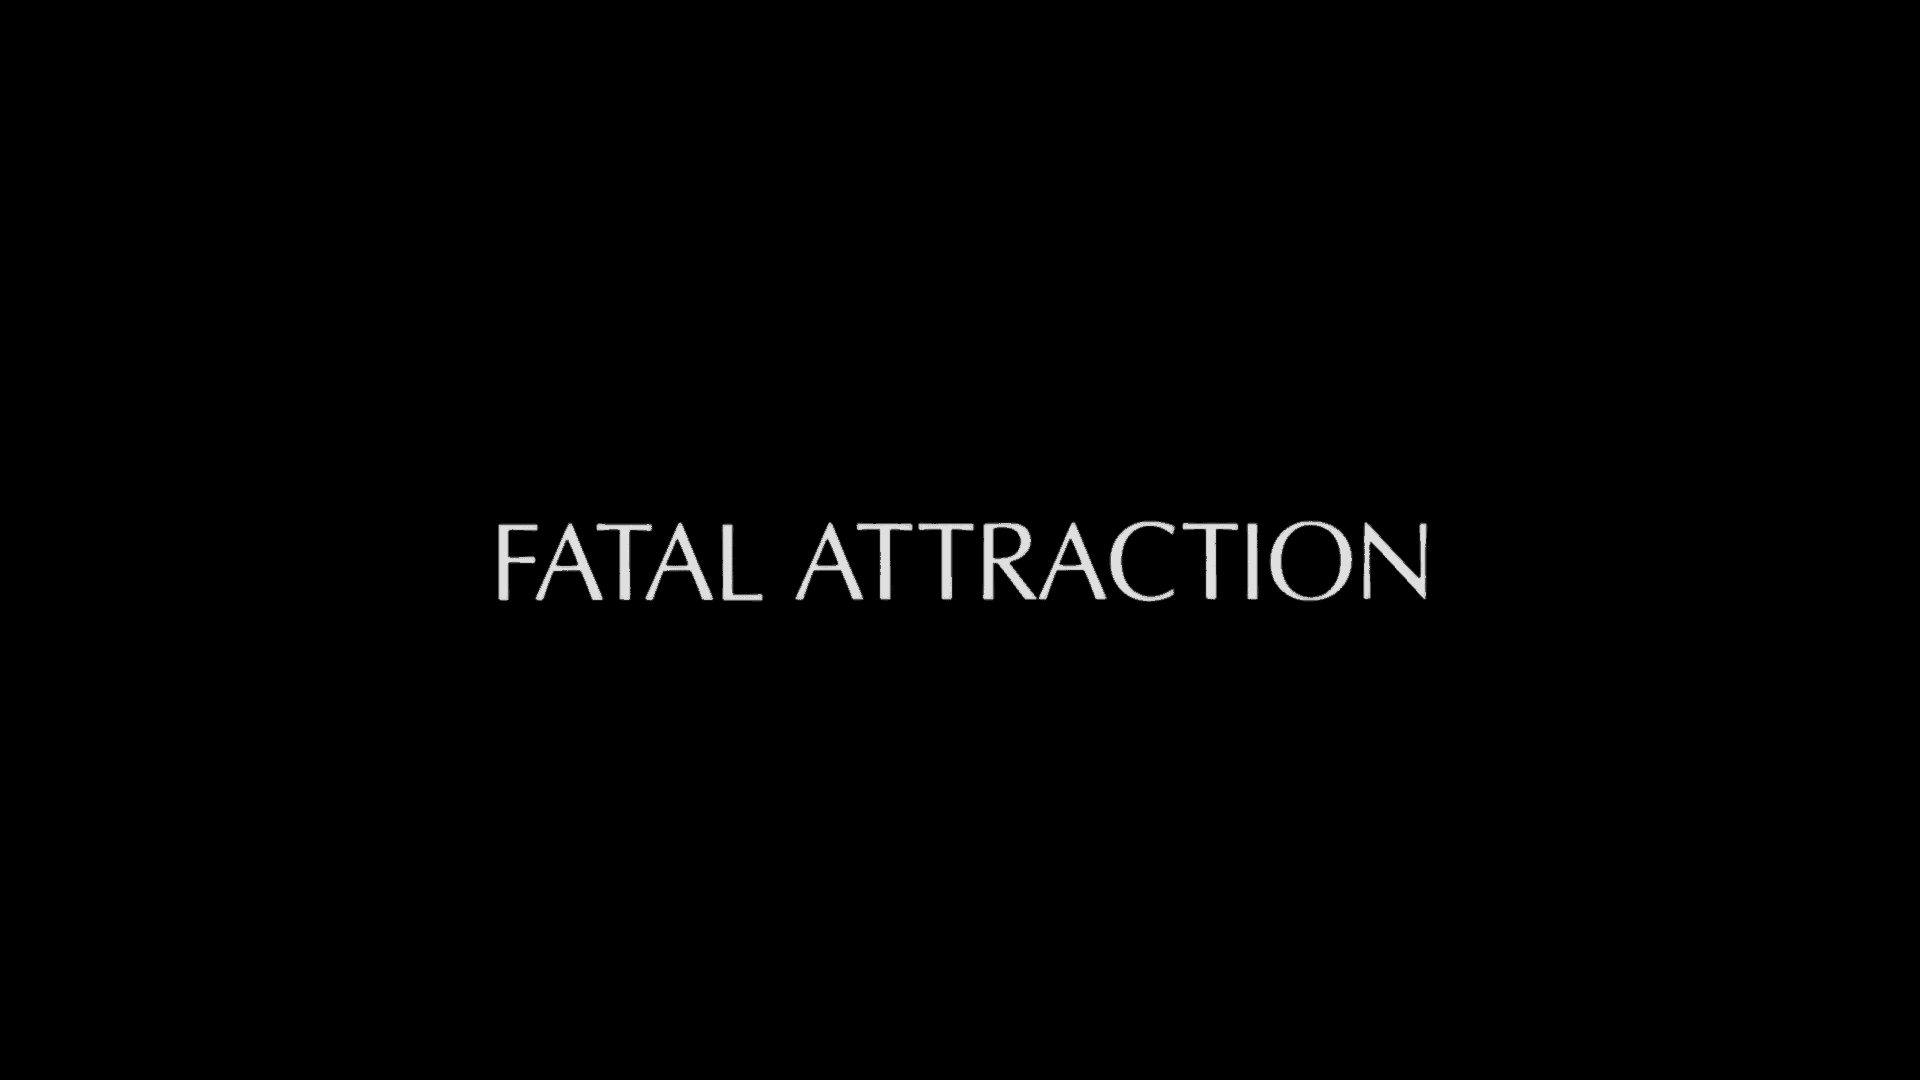 fatal attraction paramount presents title